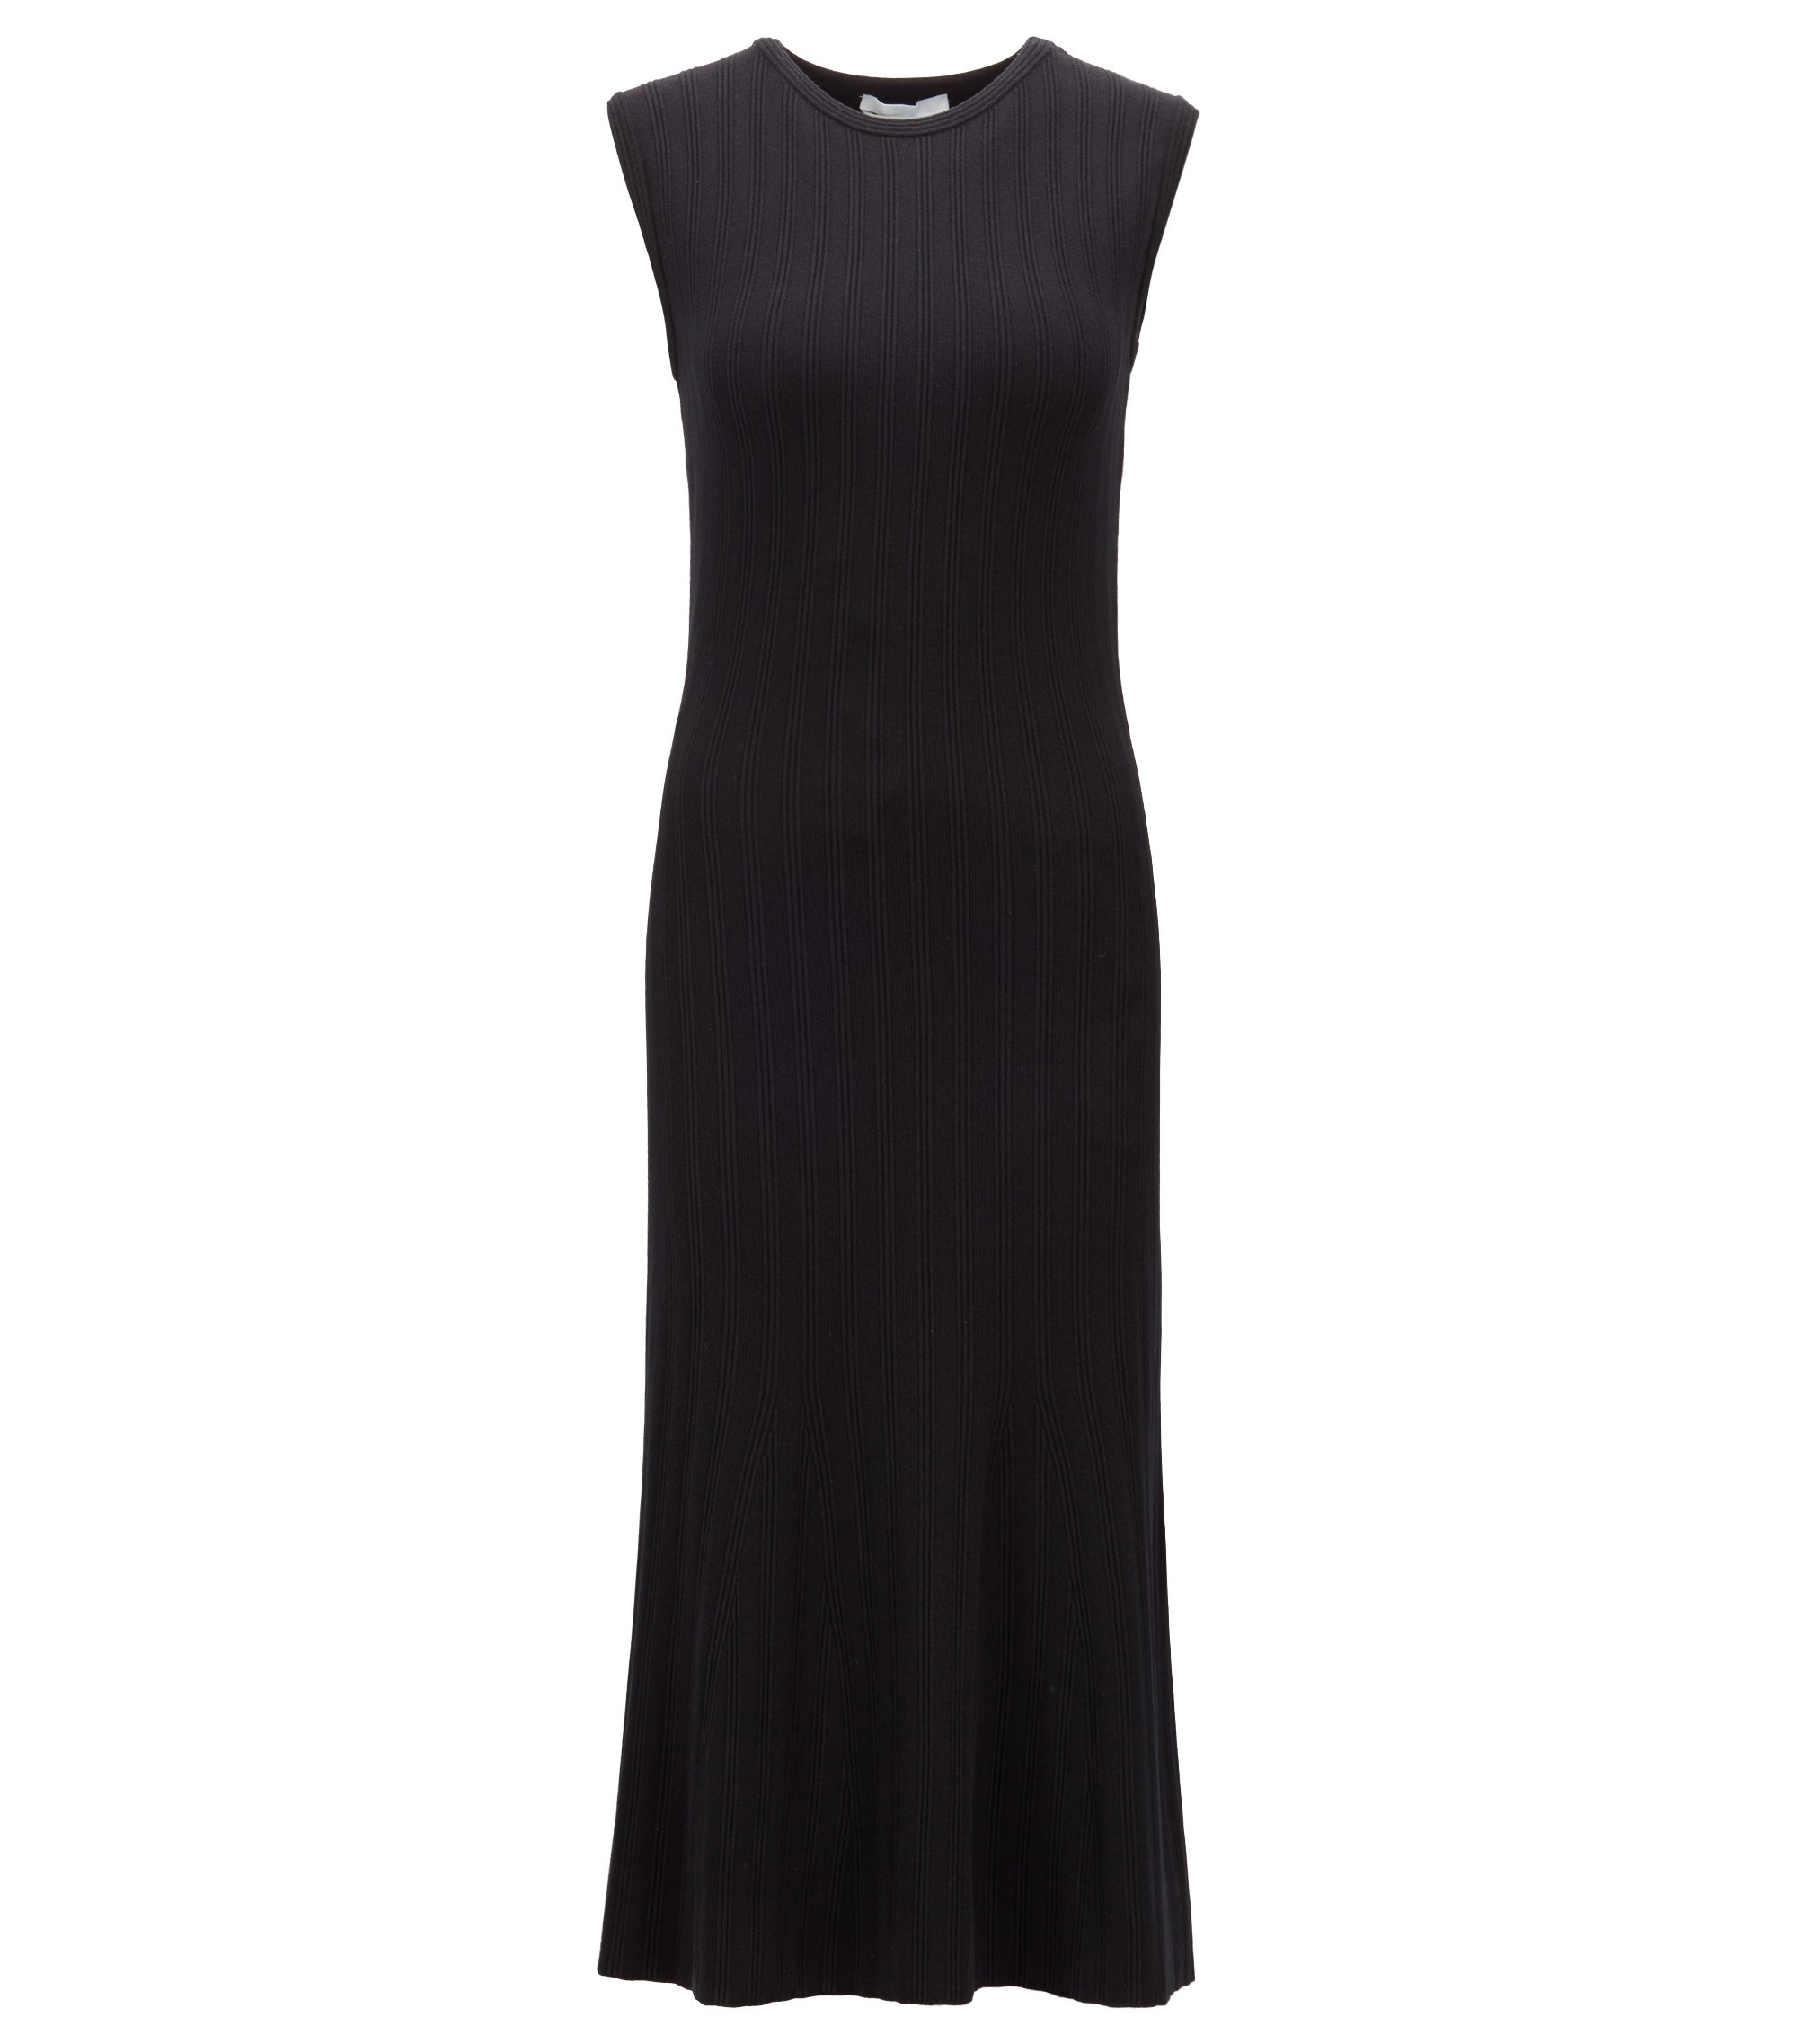 Sleeveless midi dress in a structured knit with flared skirt, Black